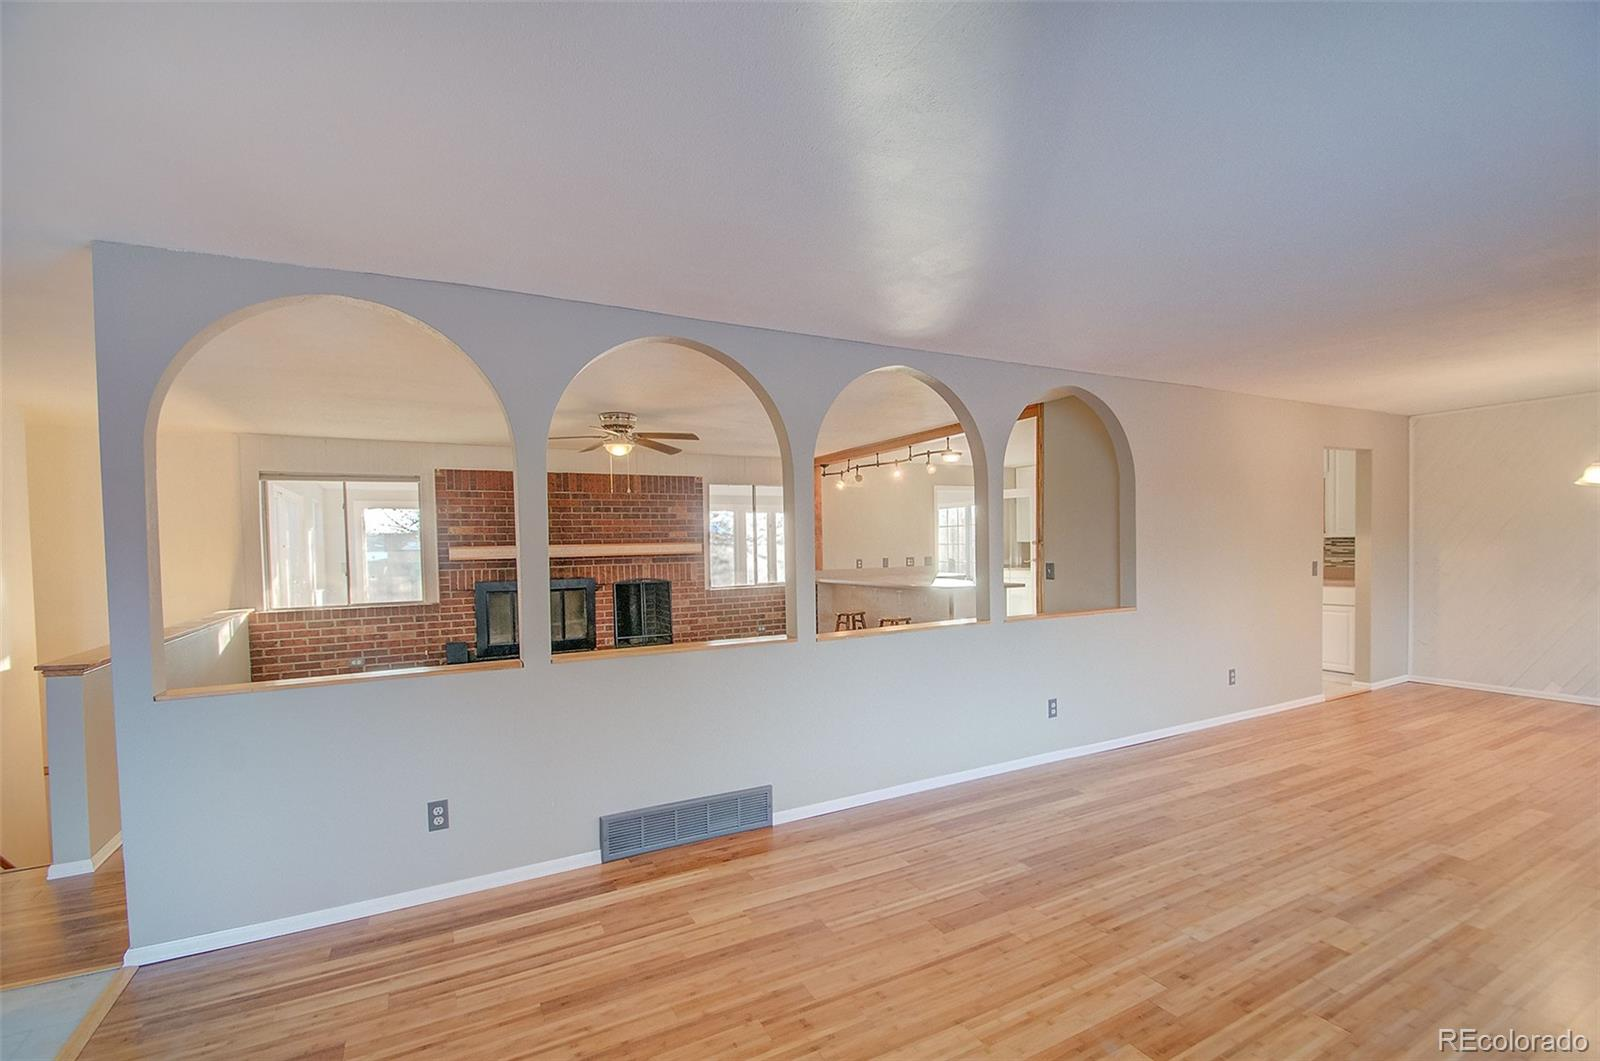 MLS# 2260867 - 4 - 6075 W 82nd Place, Arvada, CO 80003